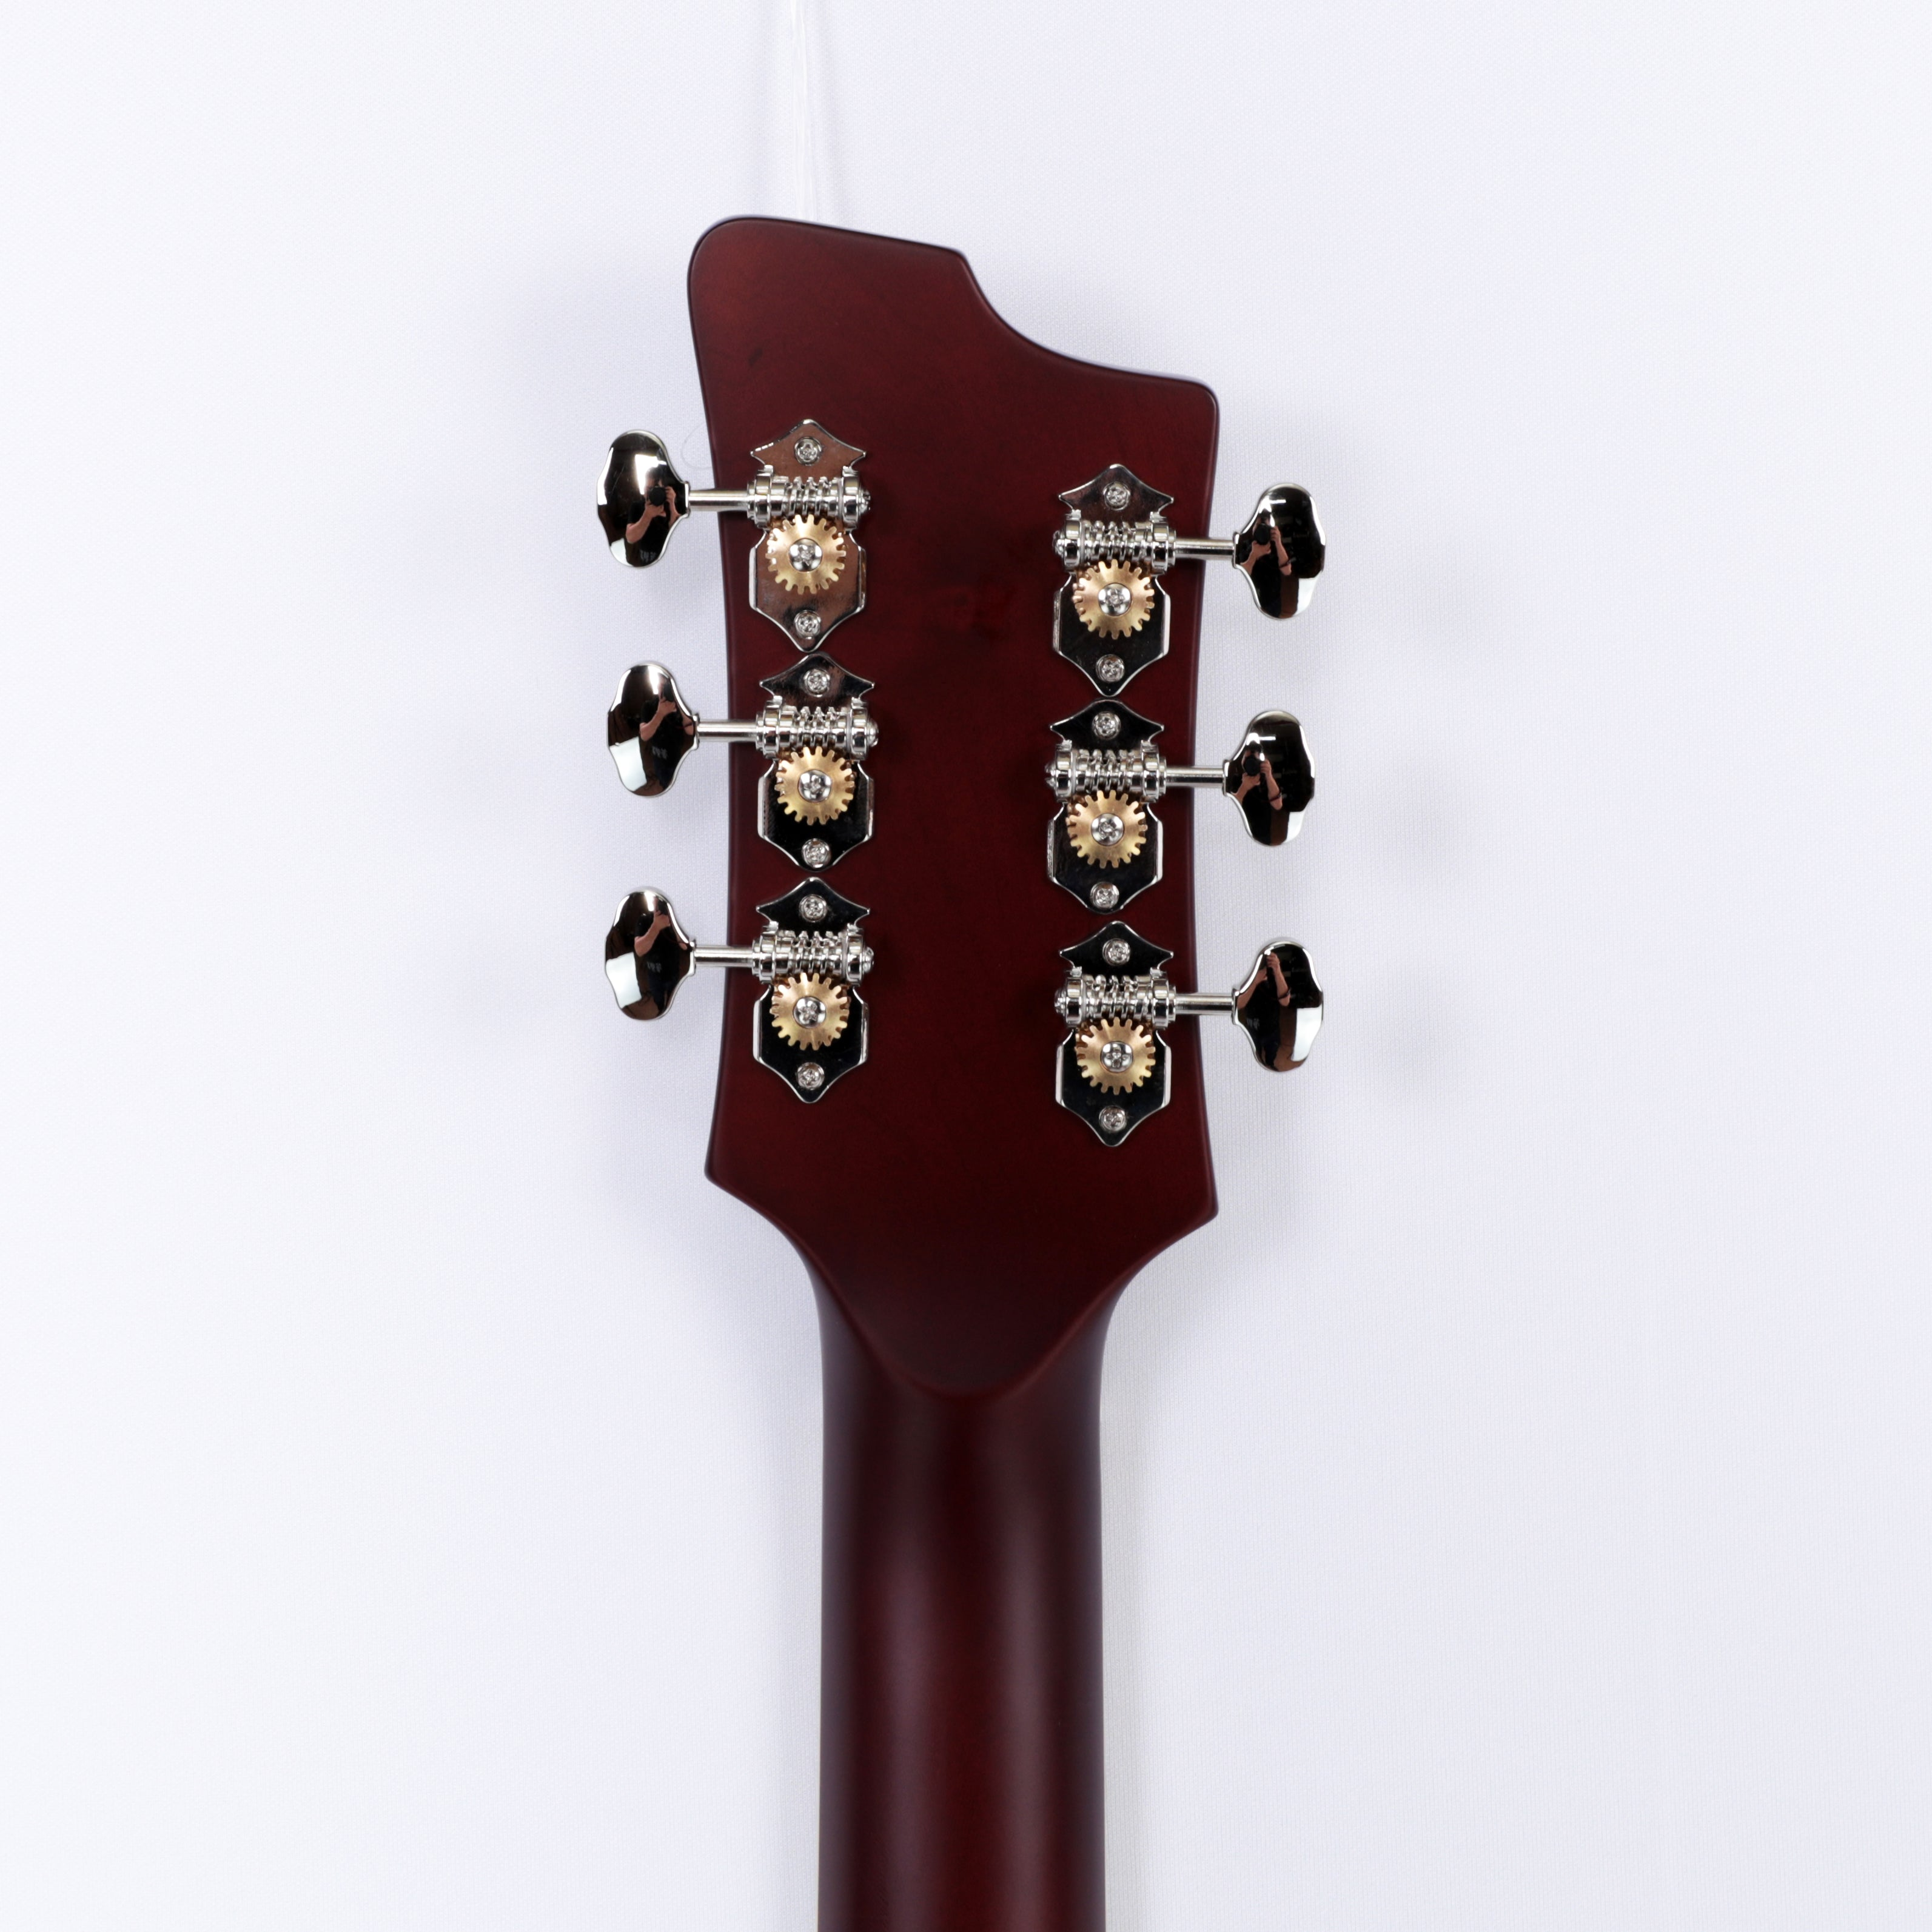 Craftsman Series 1 (Spruce) - Introductory Pricing!